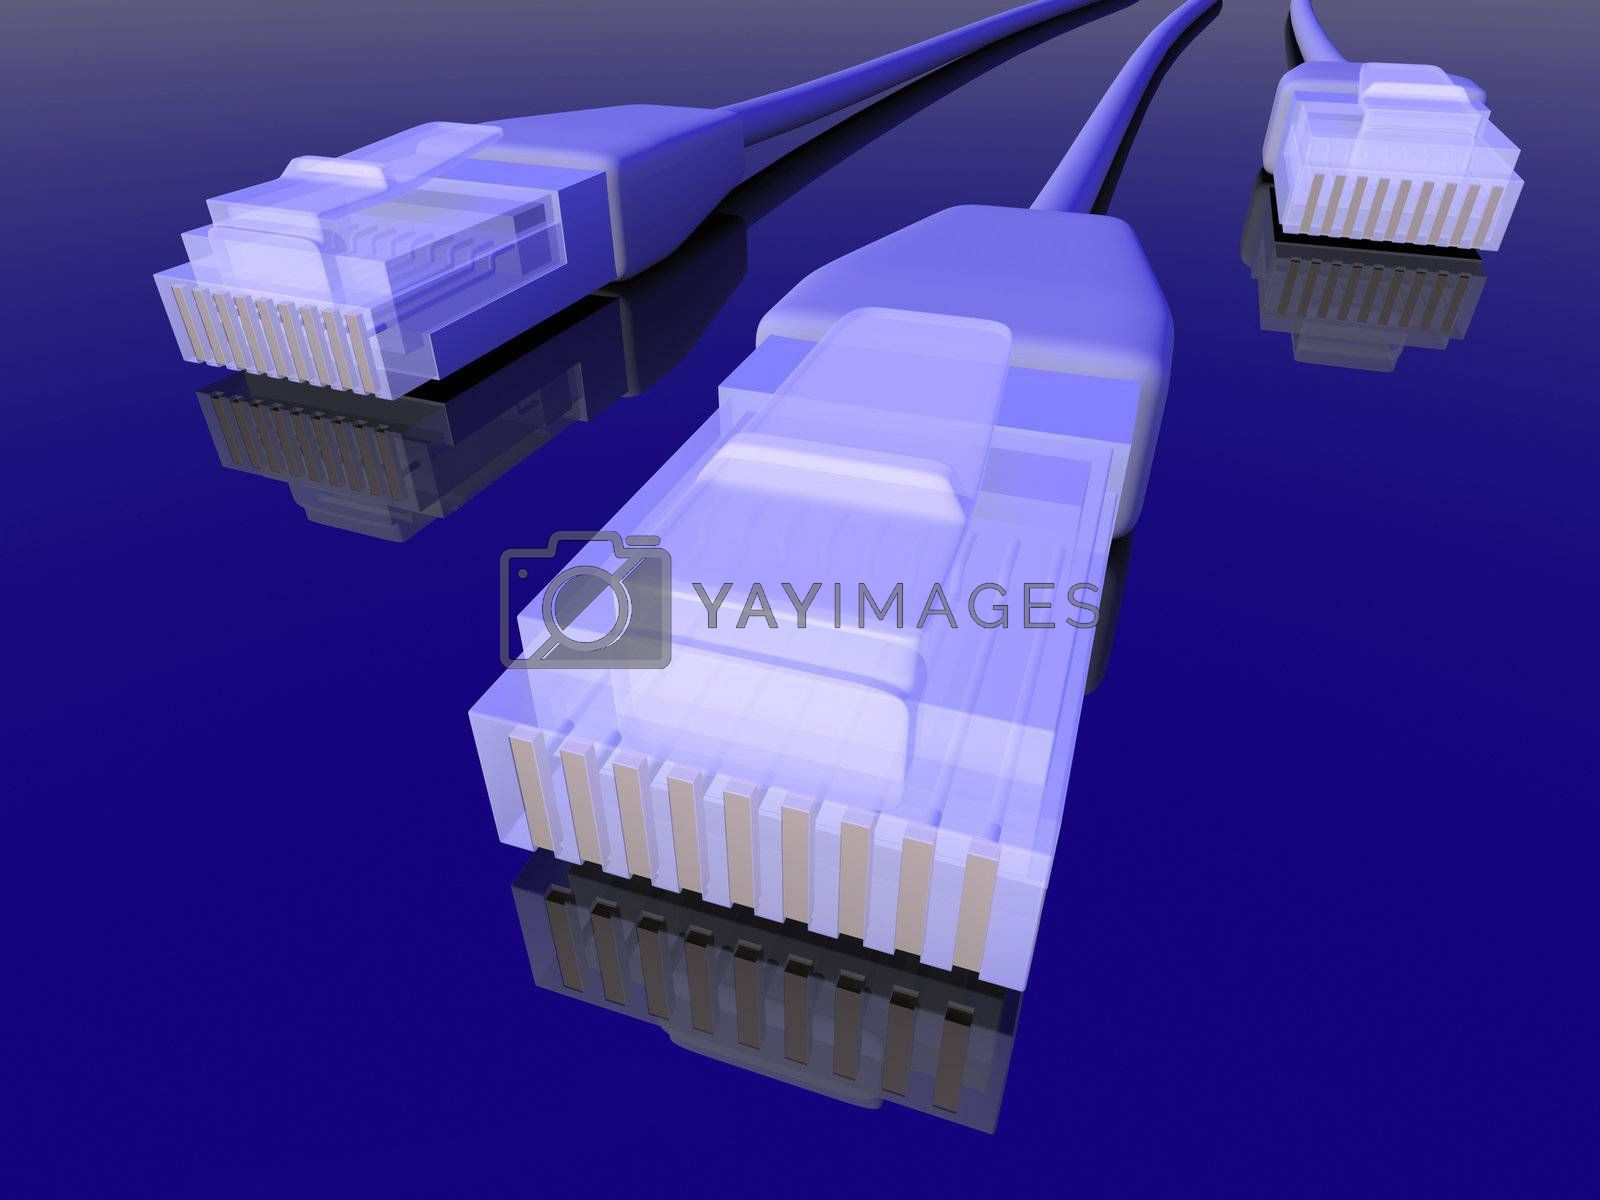 3d rendered LAN / Network Cable. Blue Environment.